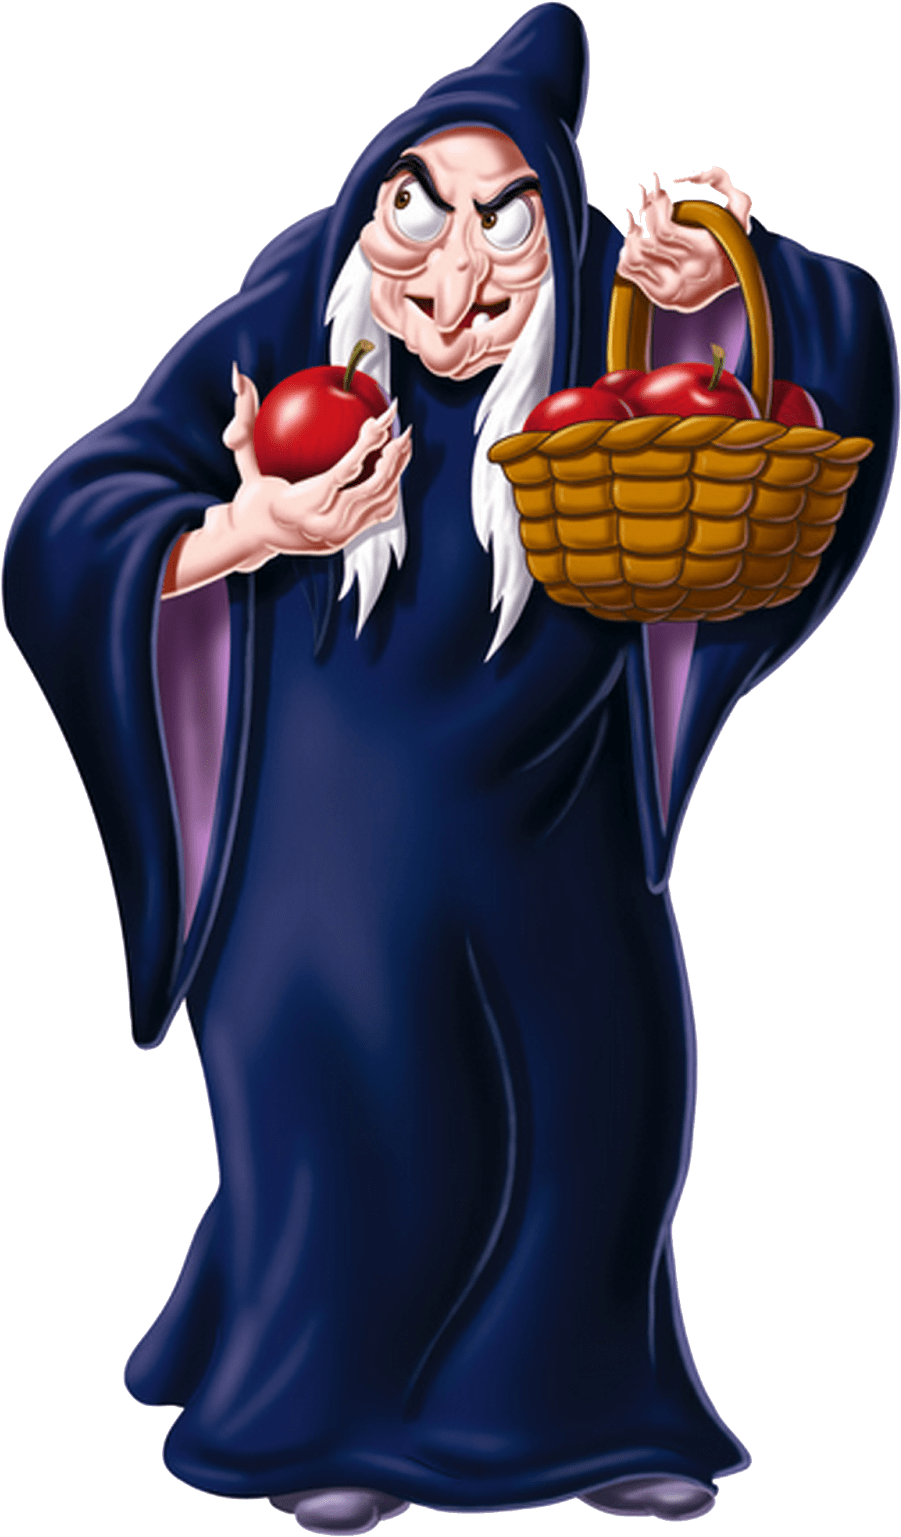 Snow white old woman. Witch clipart apple